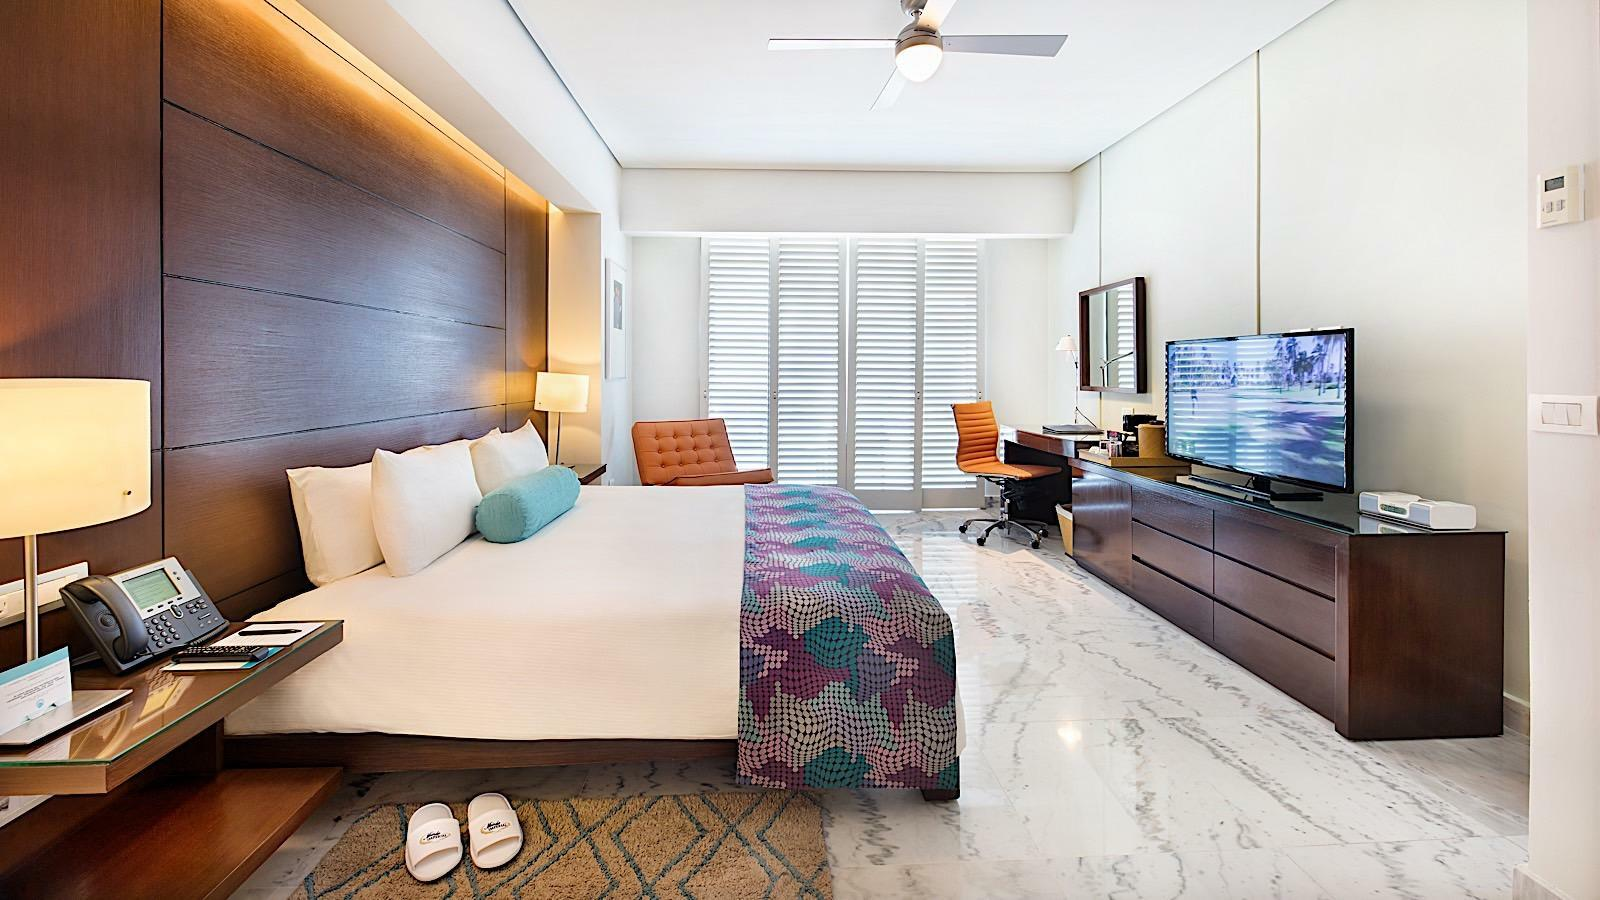 Club 89 King Size Bed Diamante View Room with one bed at Mundo Imperial